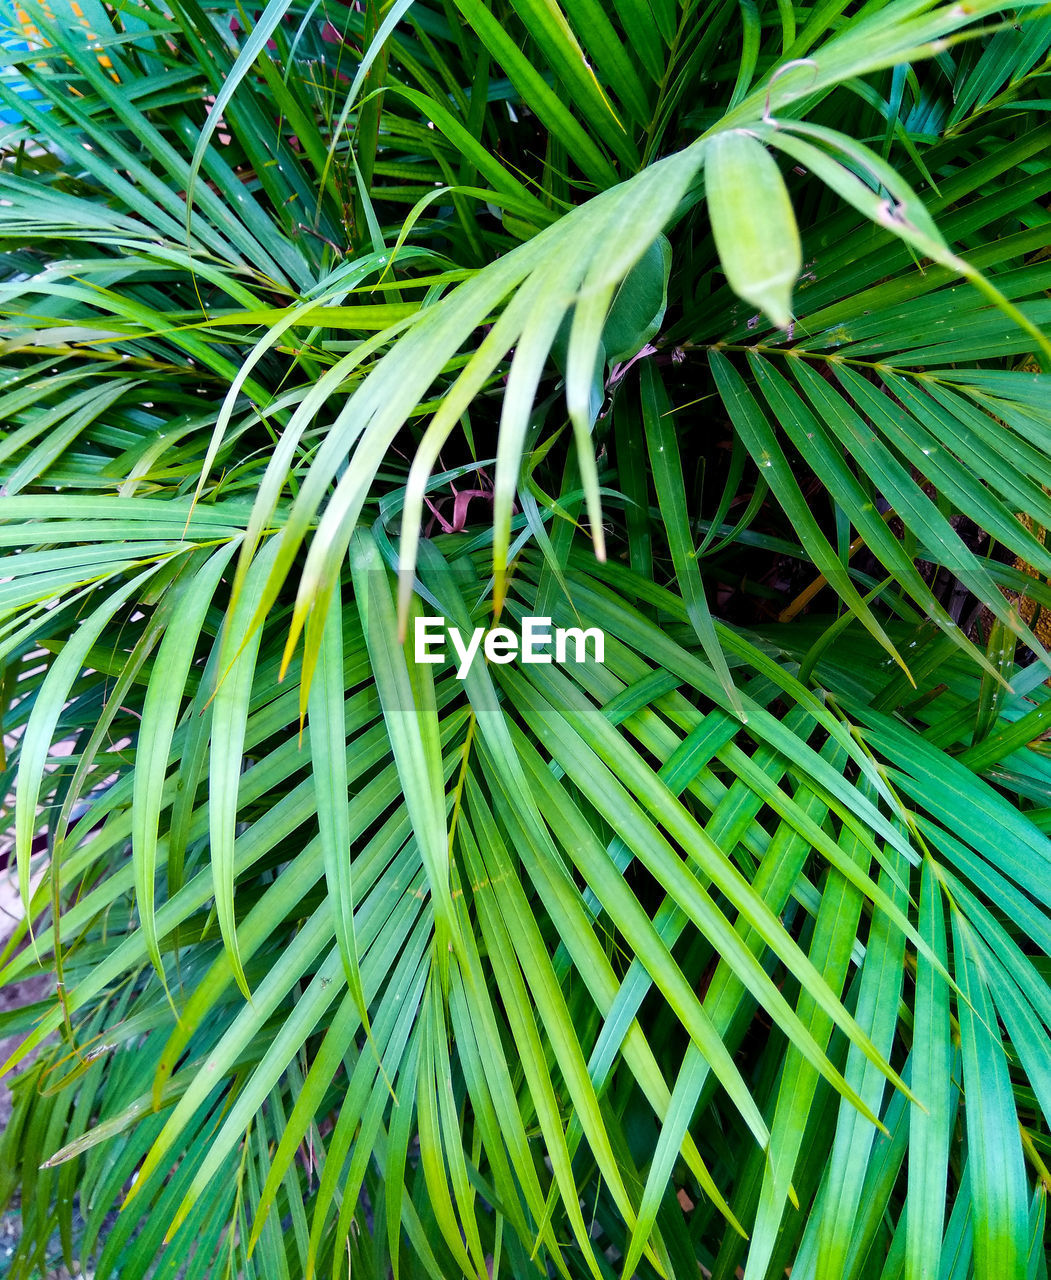 plant, green color, growth, leaf, plant part, beauty in nature, no people, nature, day, full frame, close-up, backgrounds, tree, freshness, outdoors, grass, green, lush foliage, foliage, high angle view, palm leaf